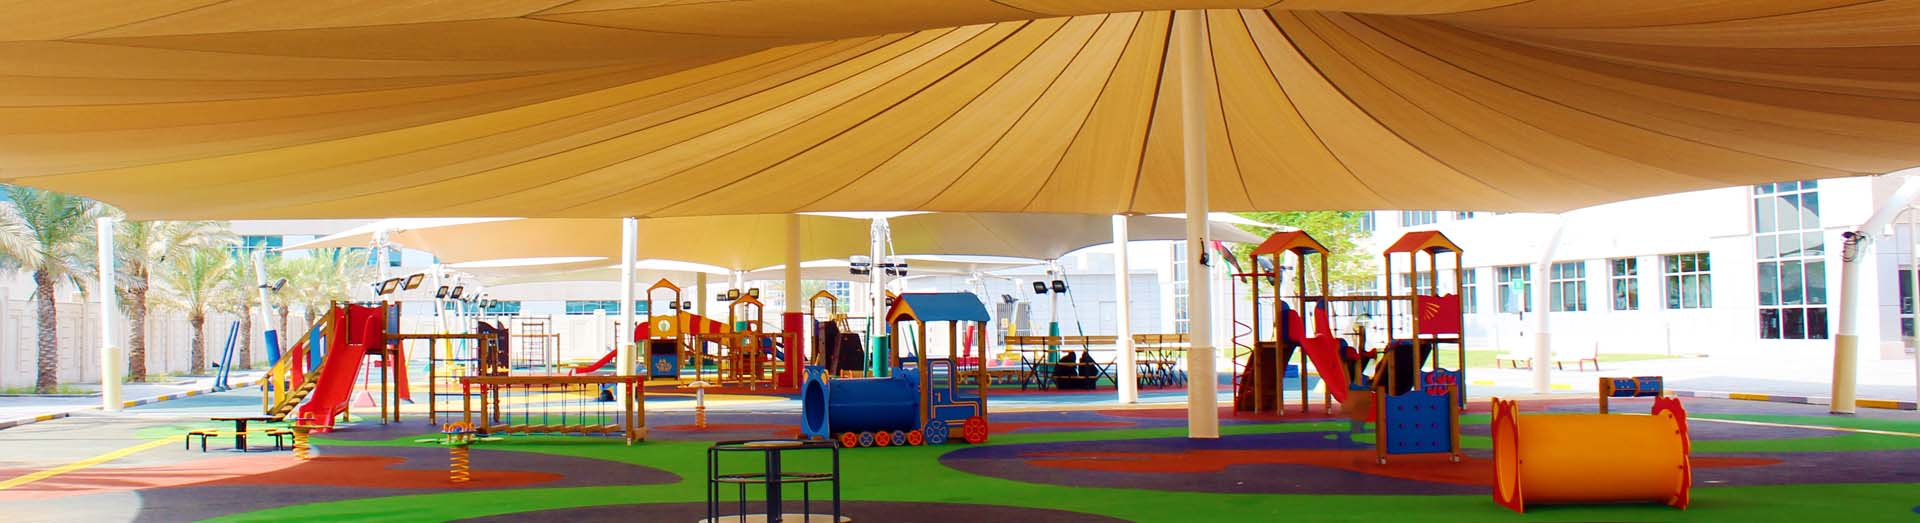 Playground Equipment Supplier in UAE